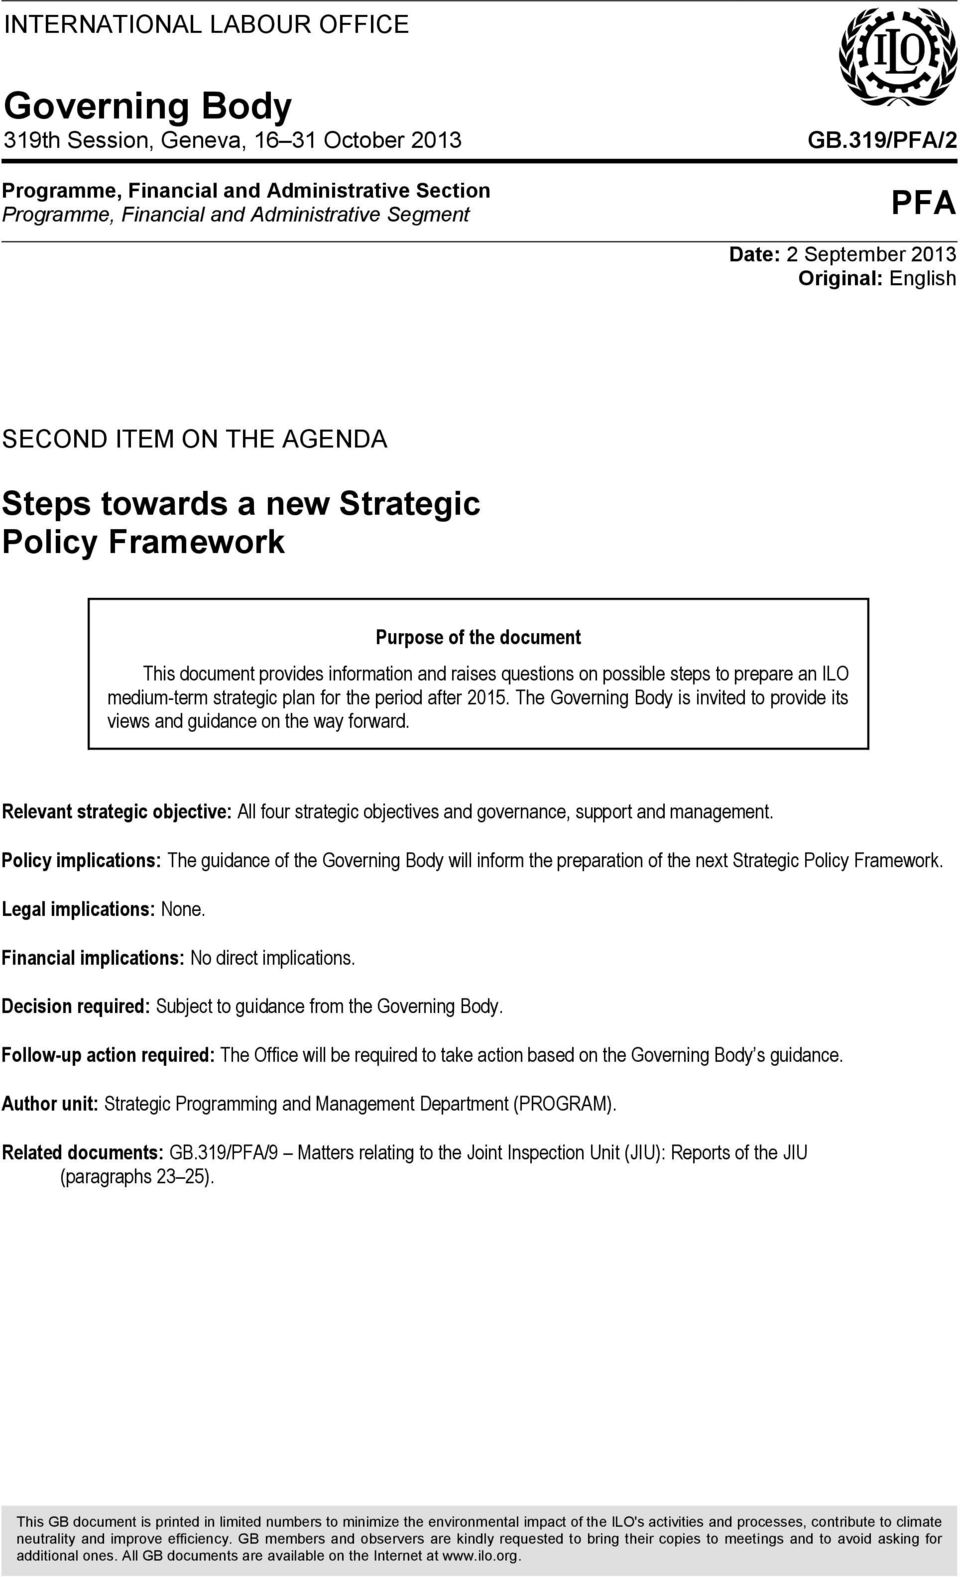 questions on possible steps to prepare an ILO medium-term strategic plan for the period after 2015. The Governing Body is invited to provide its views and guidance on the way forward.